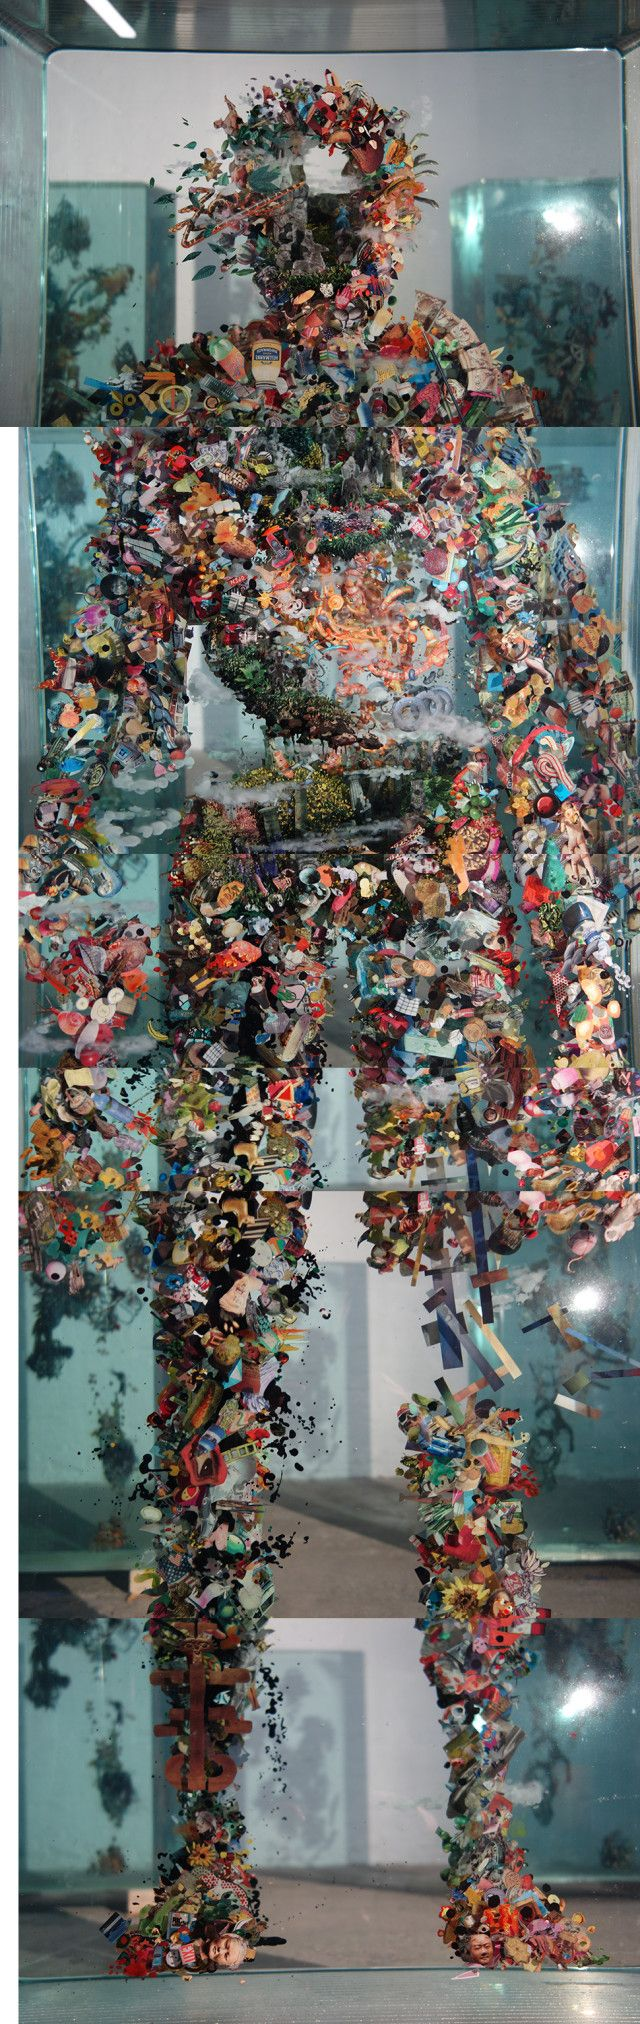 11 Best Art Images On Pinterest Author Authors And White People Designdautorecom Creative Creations From Recycled Circuit Board It Is Not Cryogenics Dustin Yellin